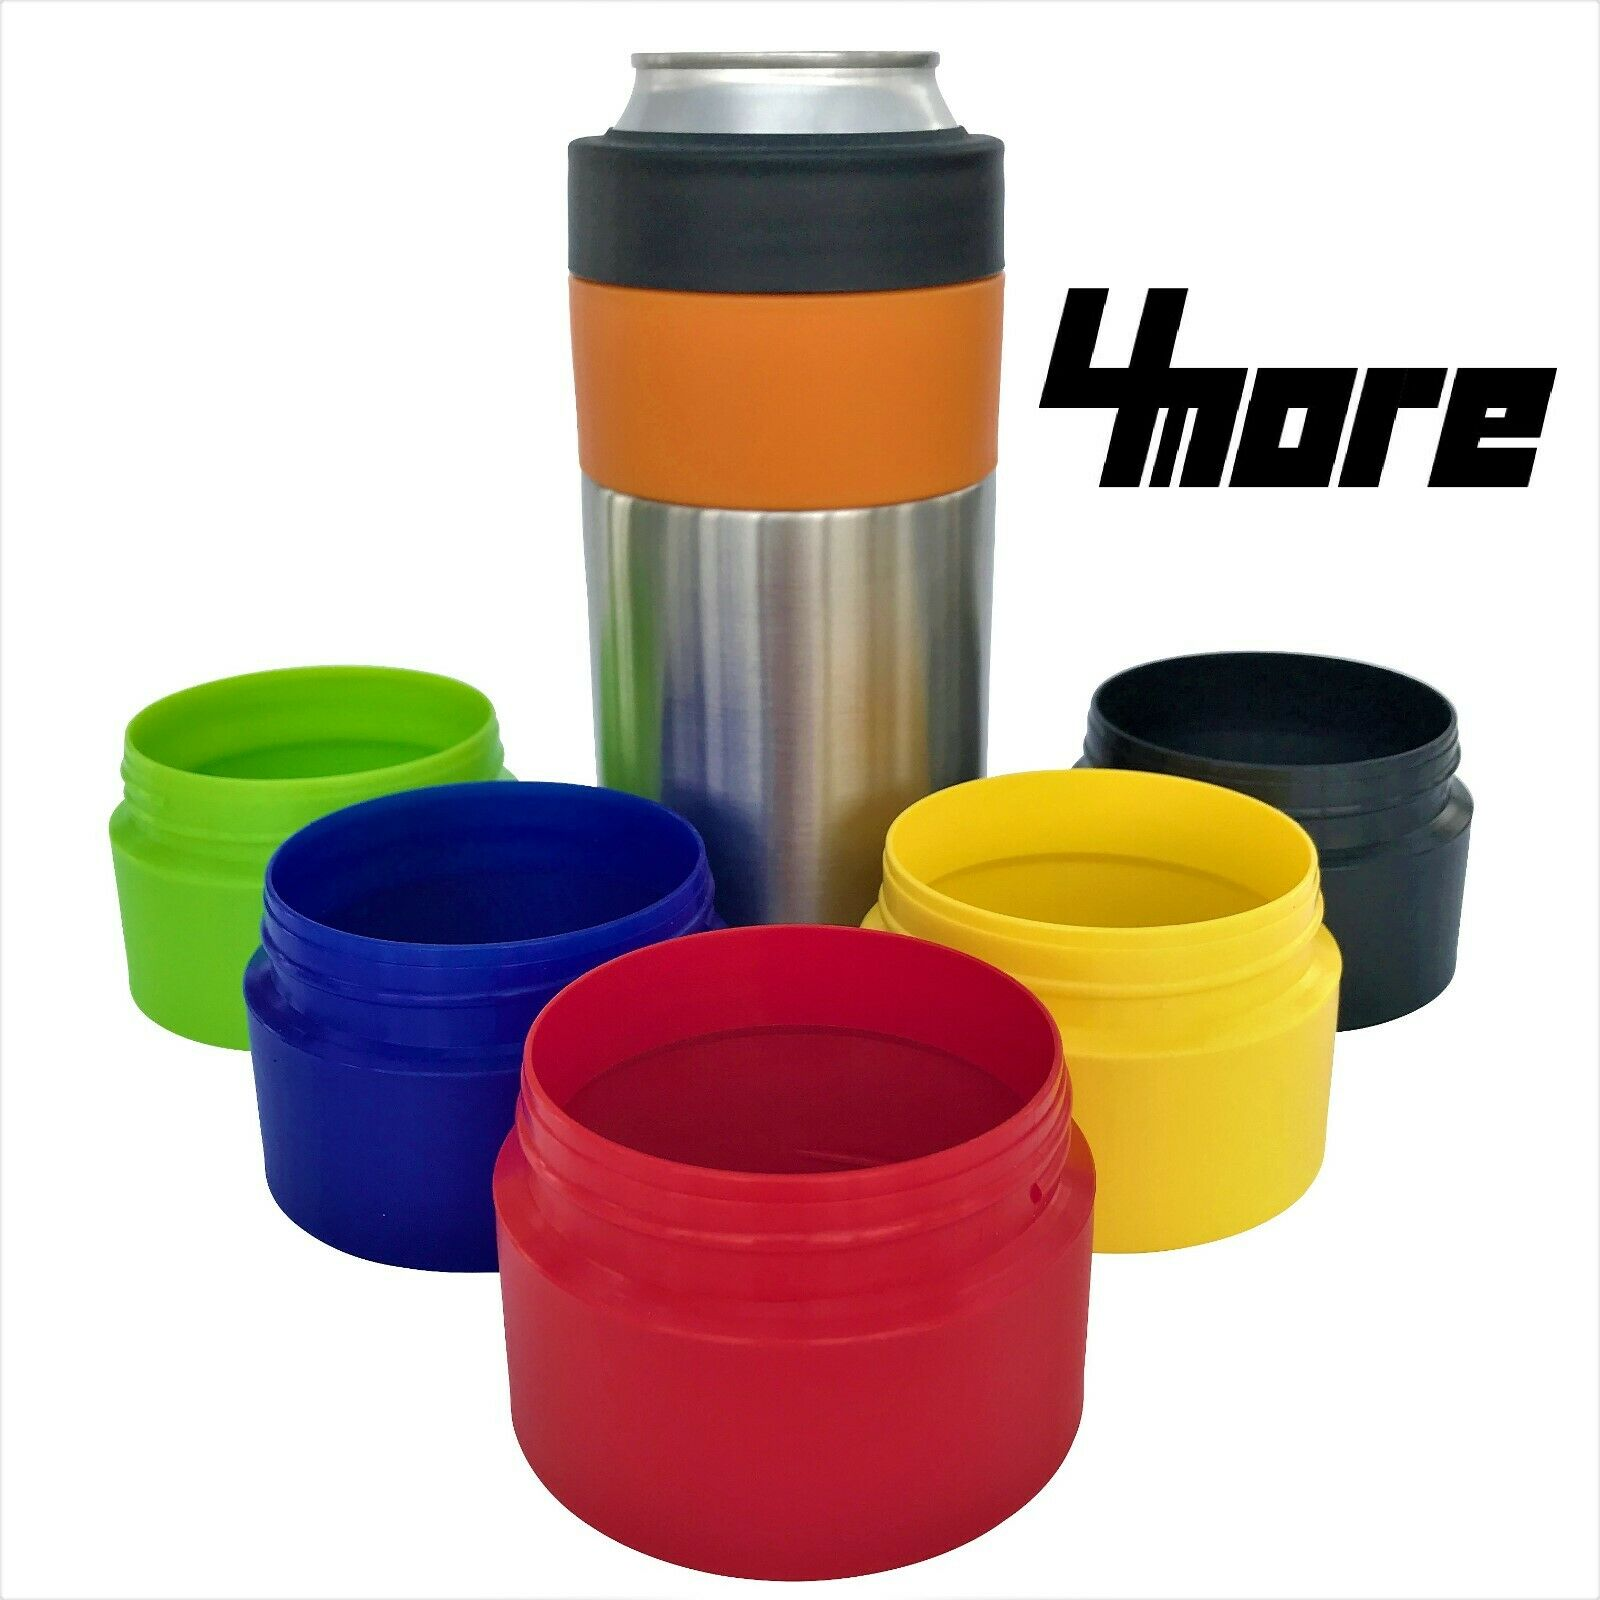 4more - 16oz Adapter for Yeti Colster, RTIC, Ozark Trail and